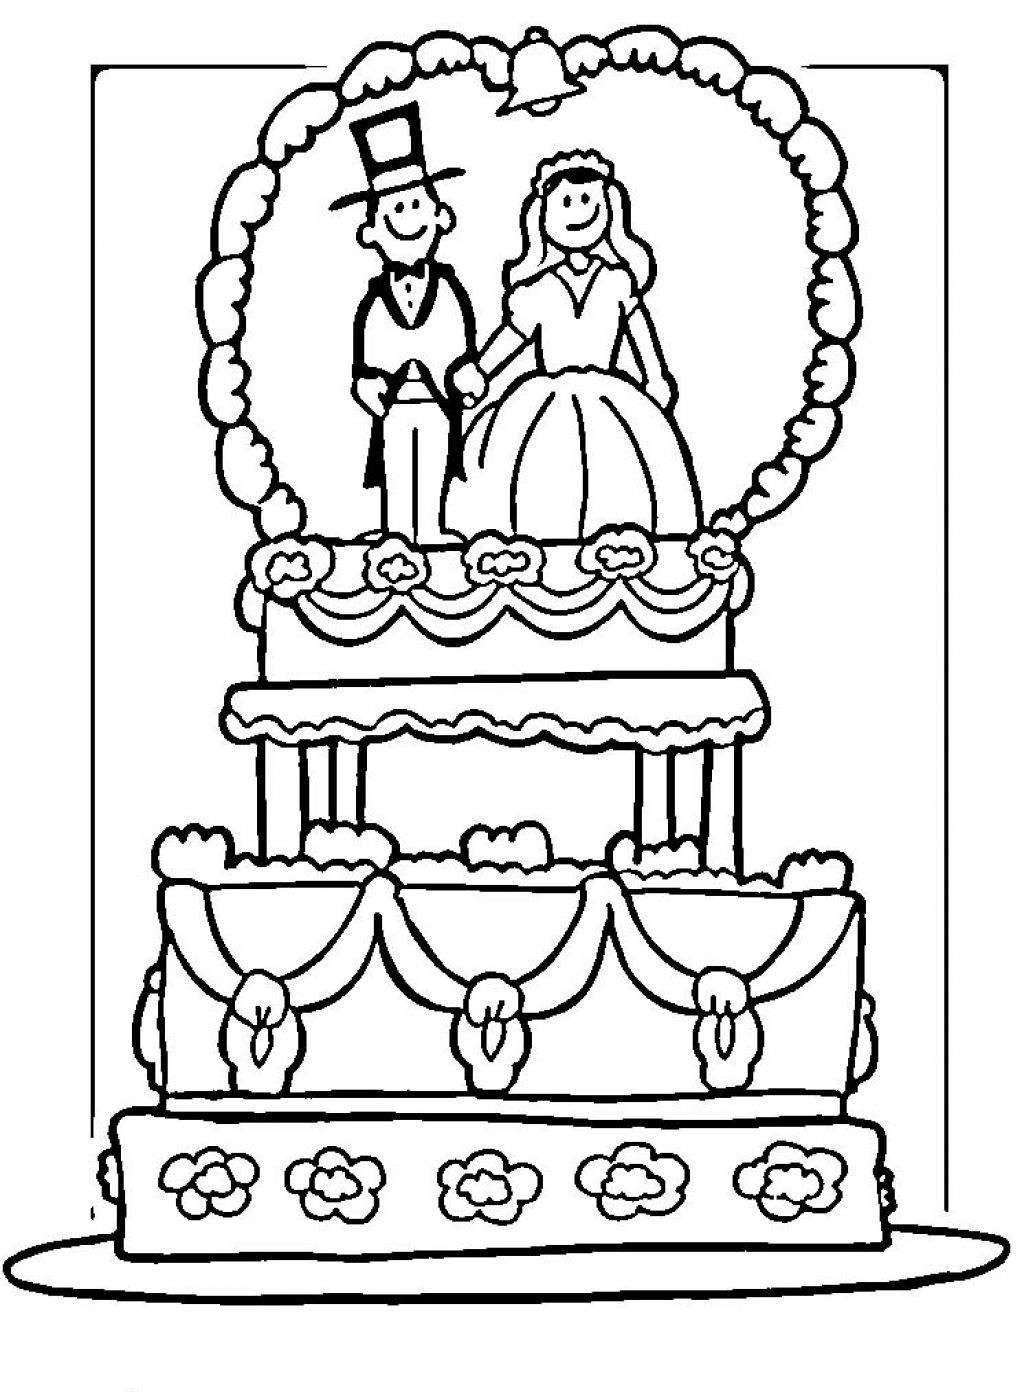 Free coloring pages wedding - Free Coloring Pages For Wedding Cakes Wedding Coloring Pages 03 Precious Moments Wedding Coloring Pages